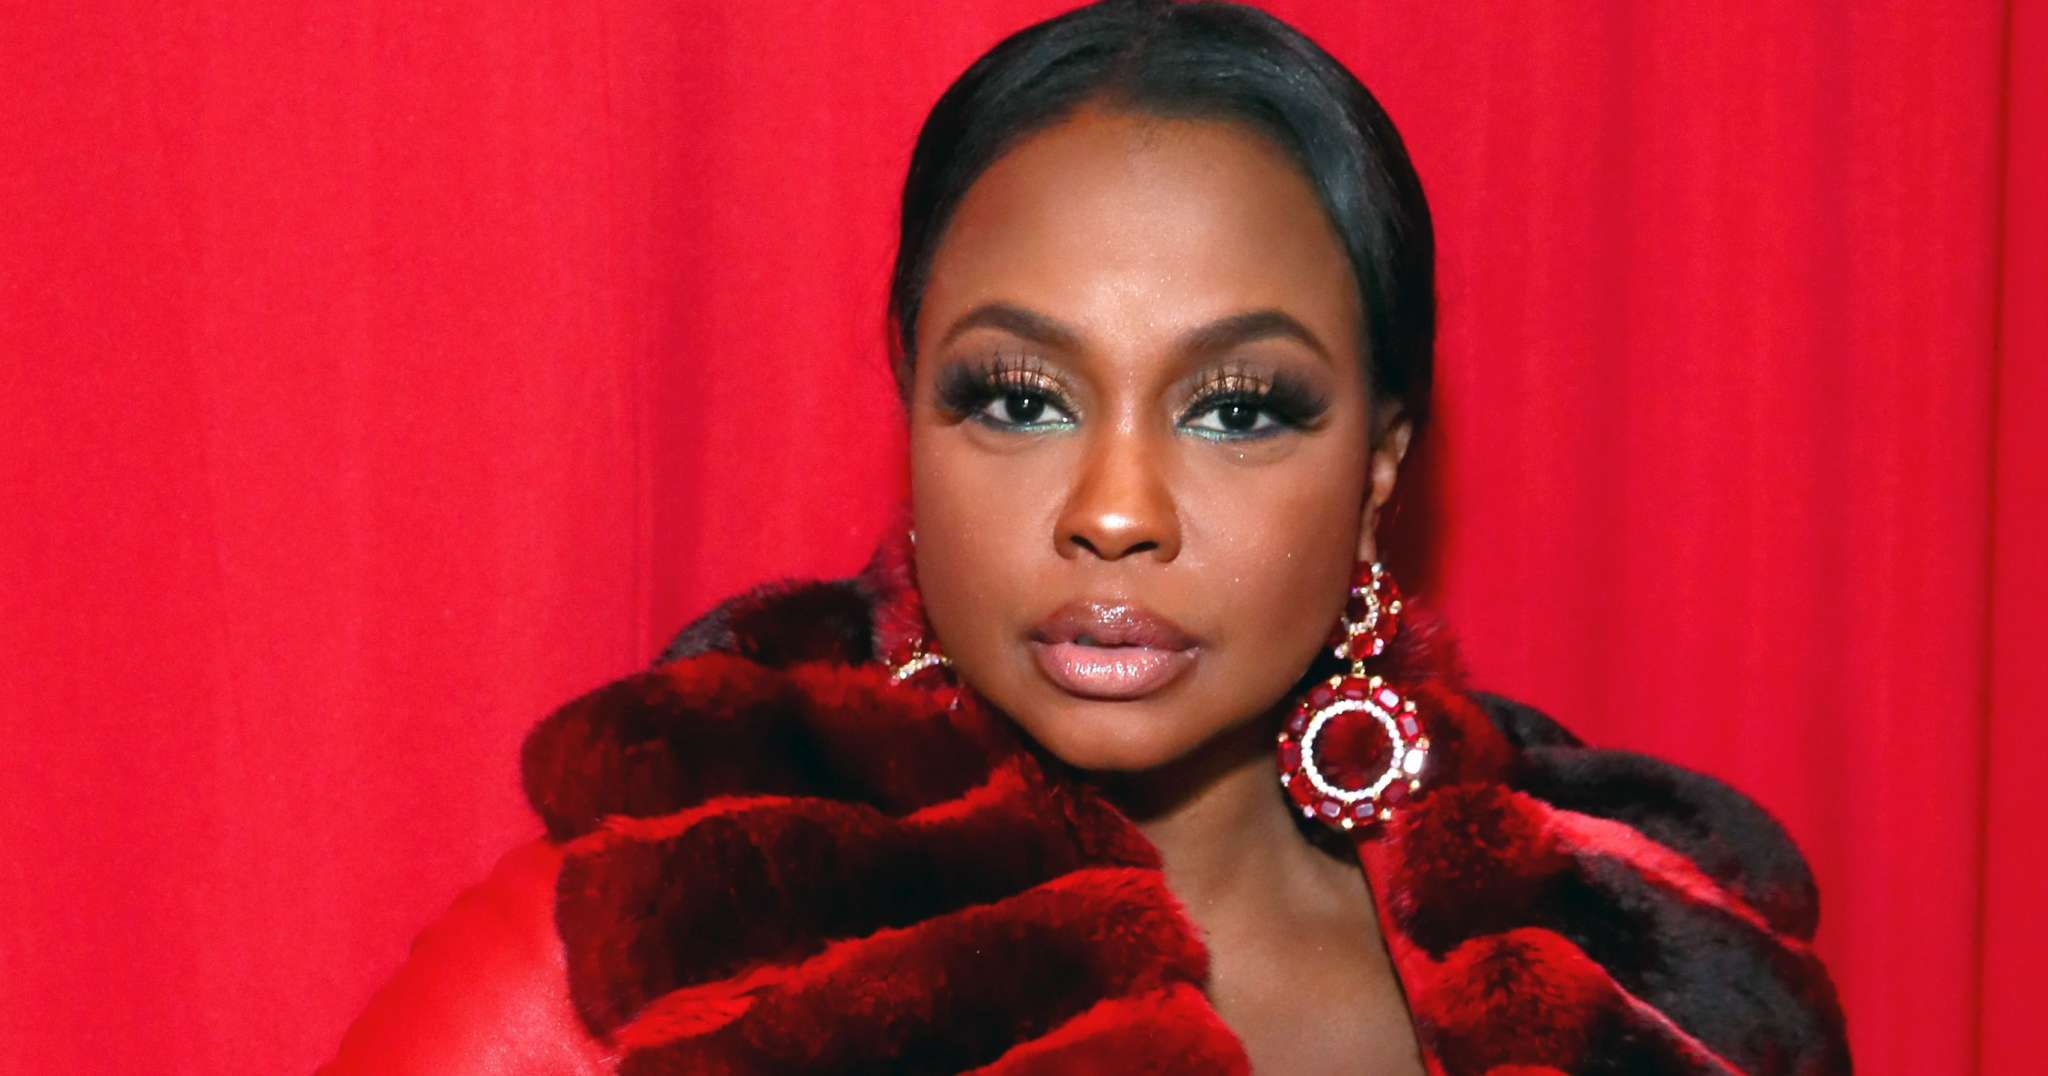 Phaedra Parks Shows Off Her Black Christmas Tree - See The Family Pic